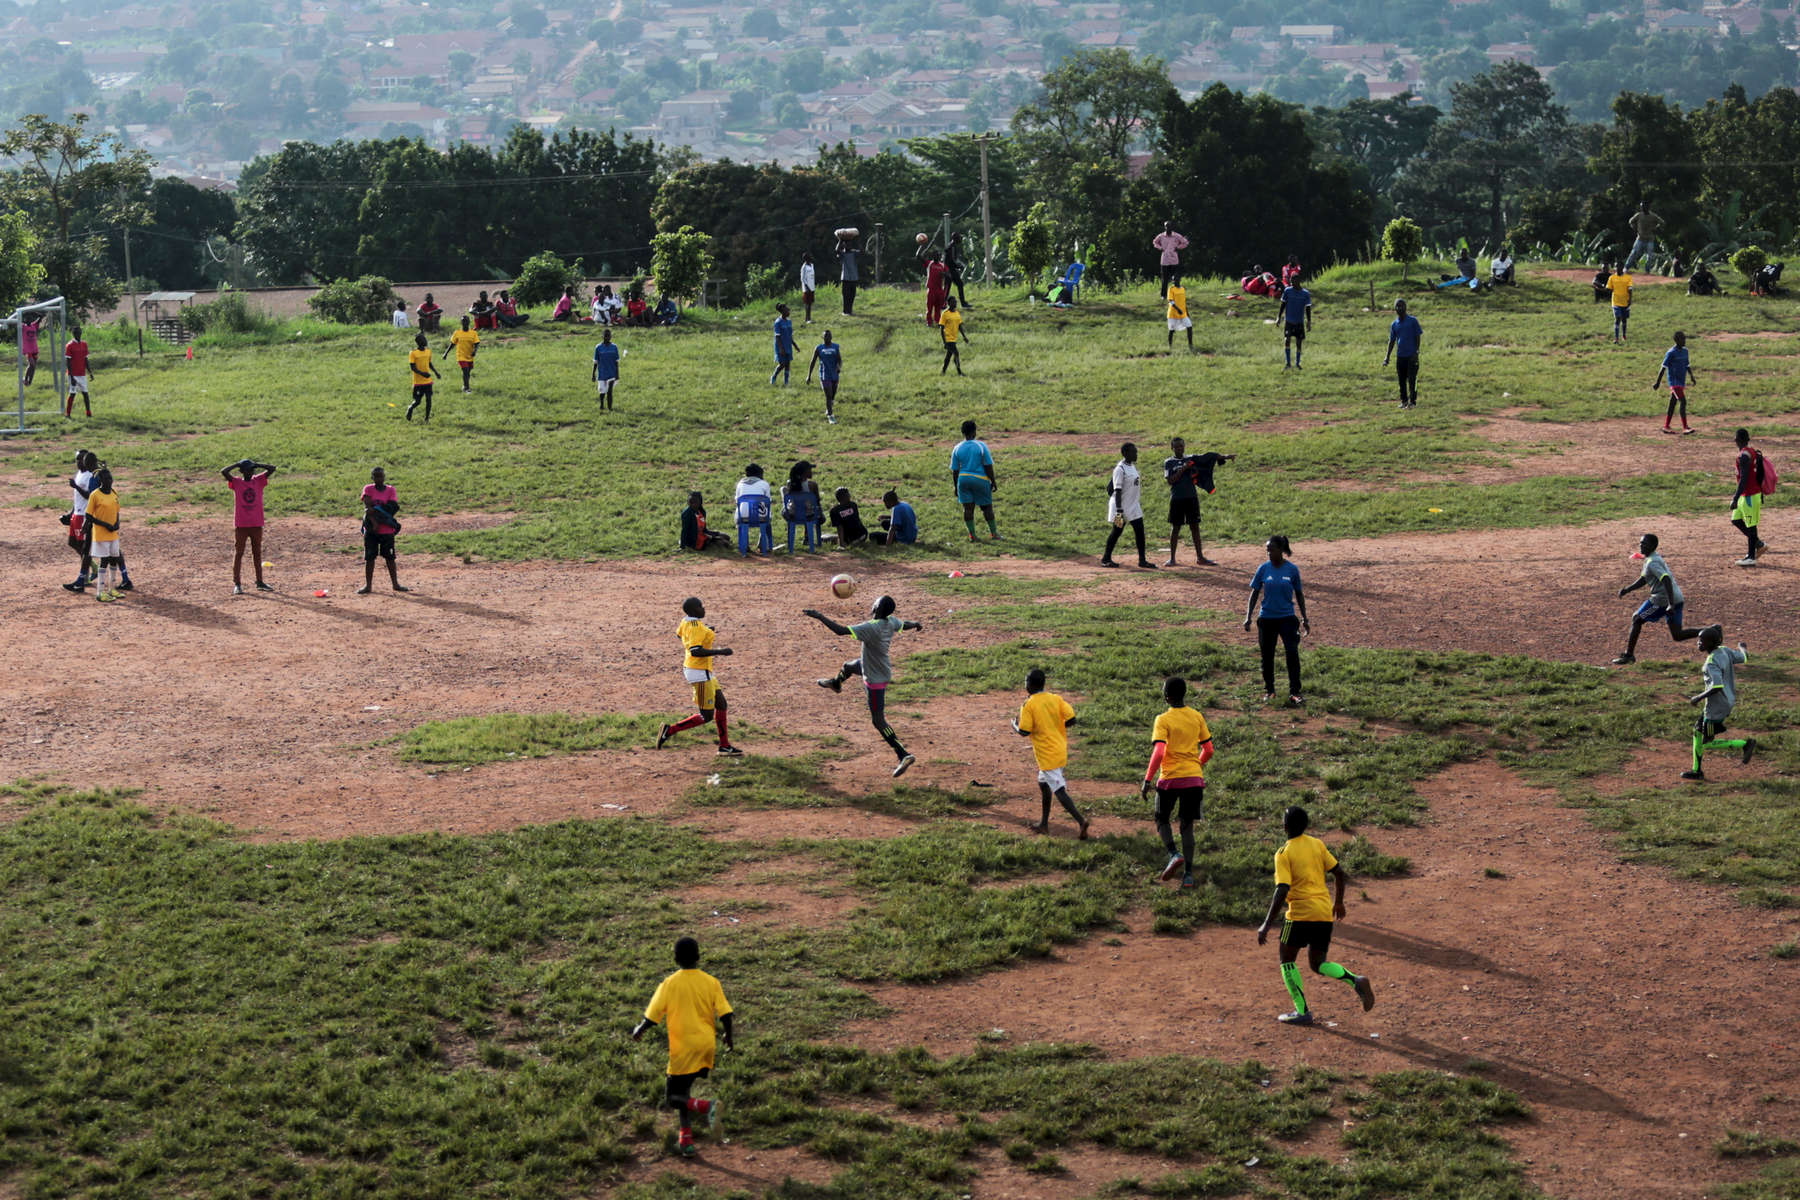 Congolese refugees play soccer games during the {quote}Women take the Lead{quote} festival, a soccer event for Congolese refugee youth in Kampala, Uganda on December 13, 2018.